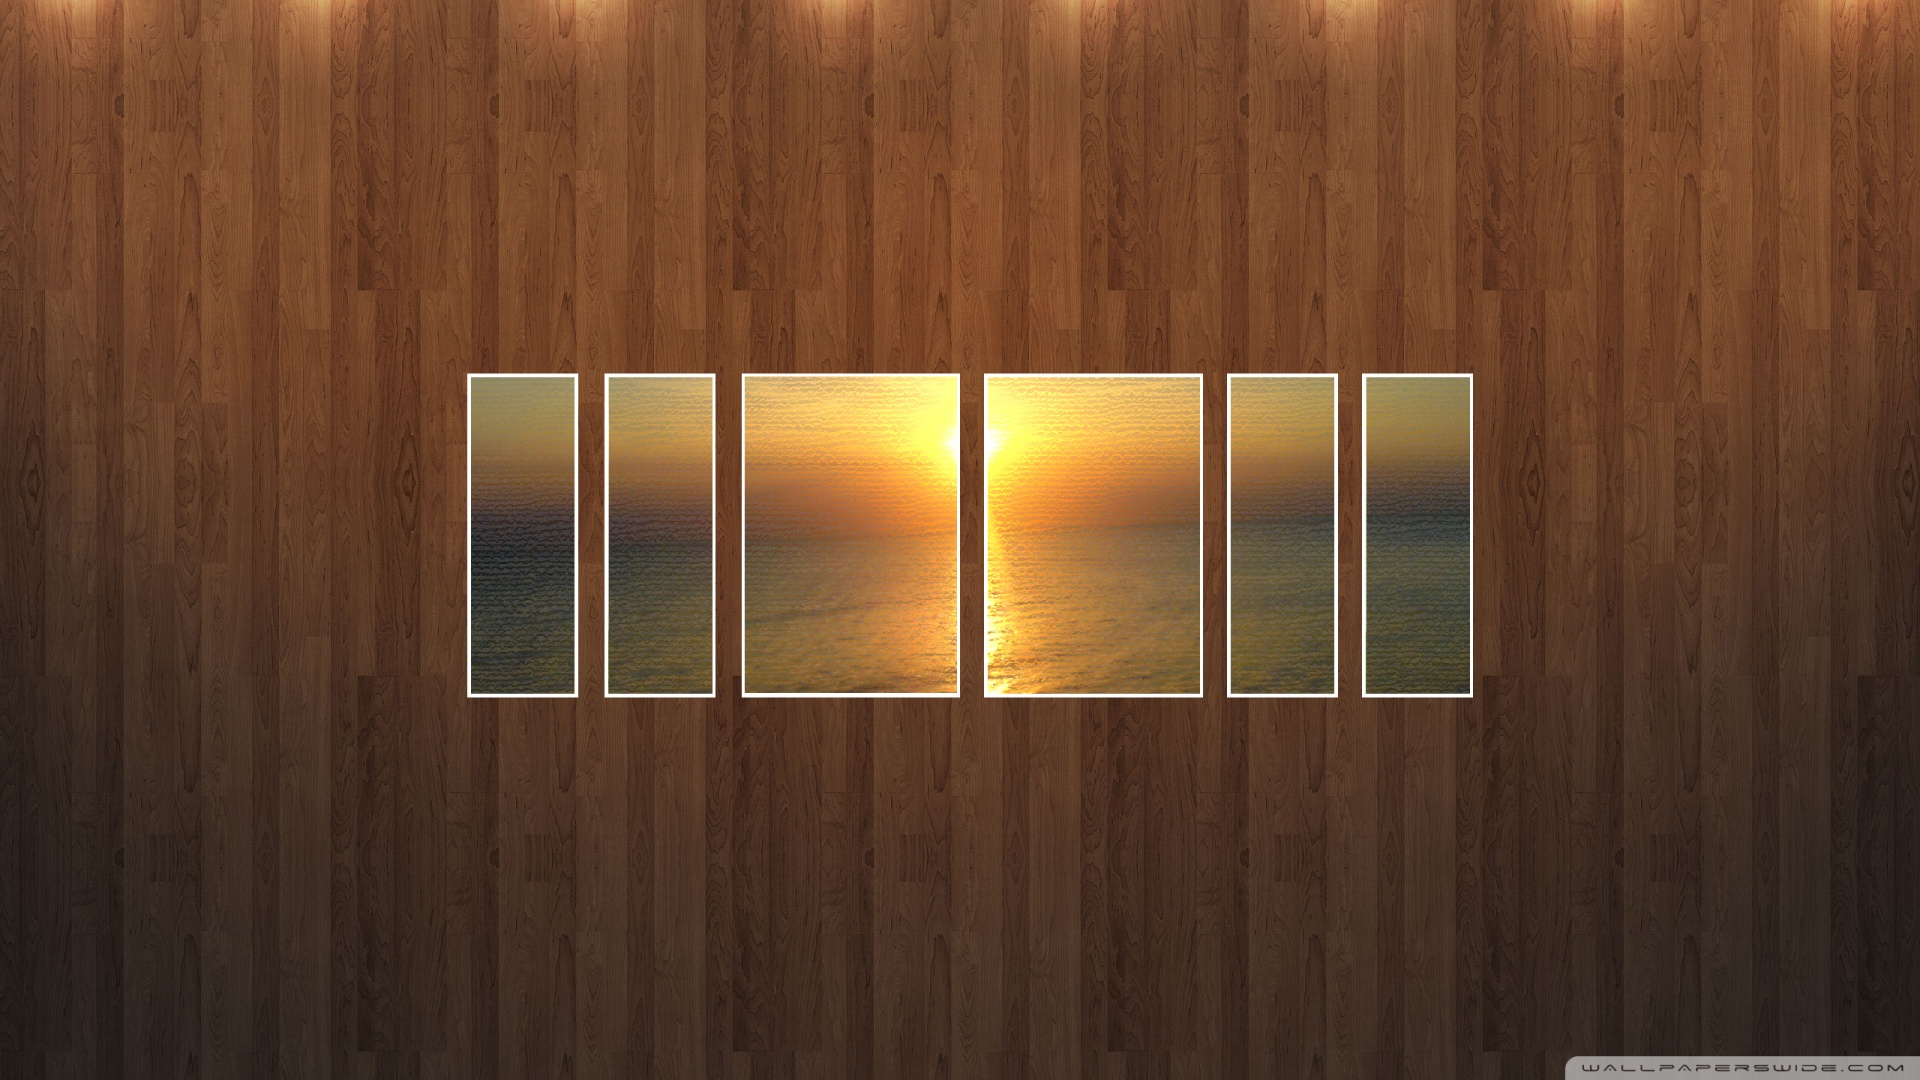 Wood Wall Wallpaper 1920x1080 Sunset Beach Picture Wood Wall 1920x1080